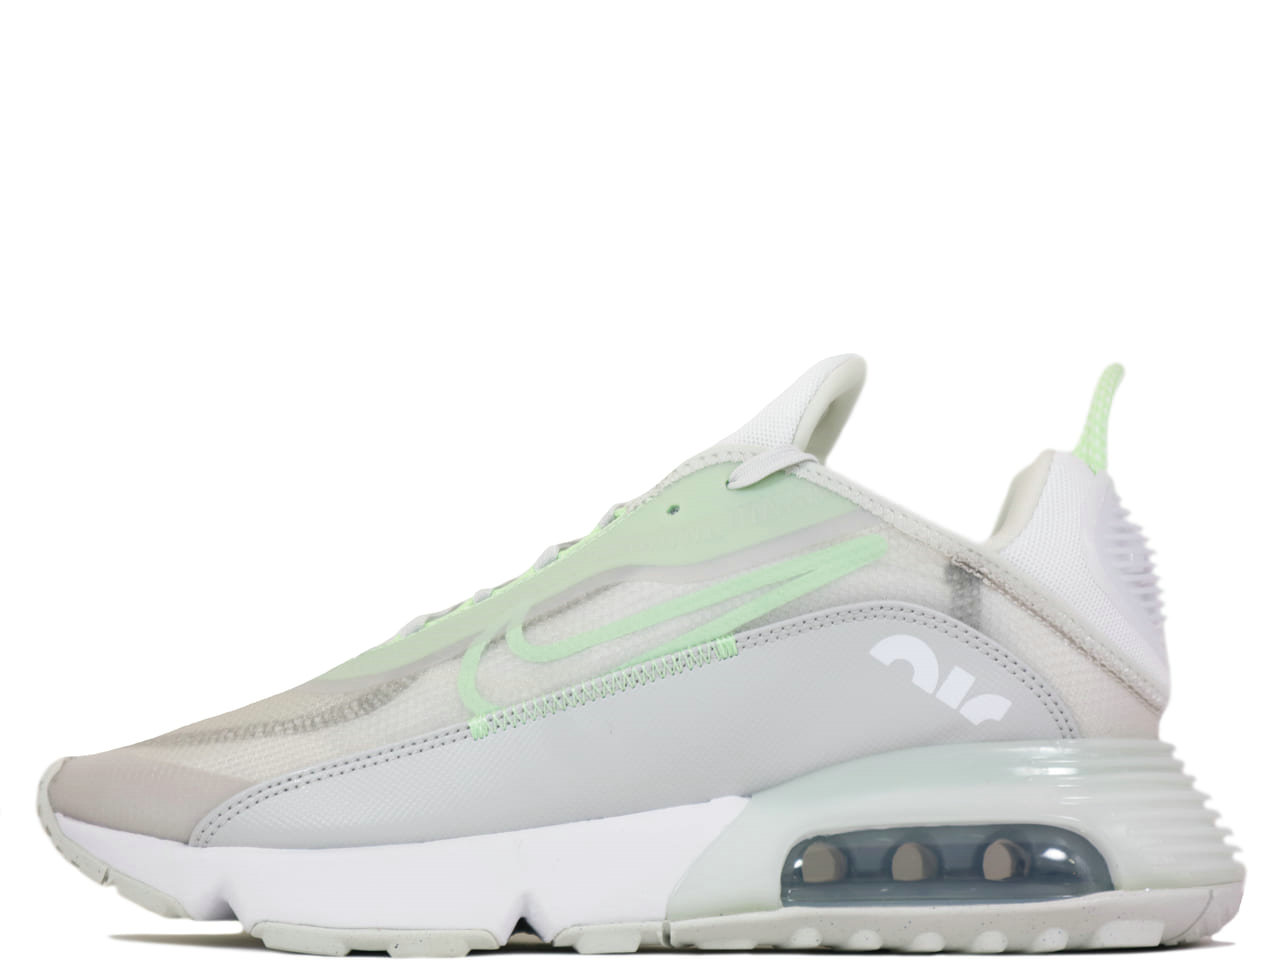 2021 Where To Buy Cheap Wholesale Womens Nike Air Max 2090 Vast Grey Vapor Green-Flat Pewter-White CT1091-001